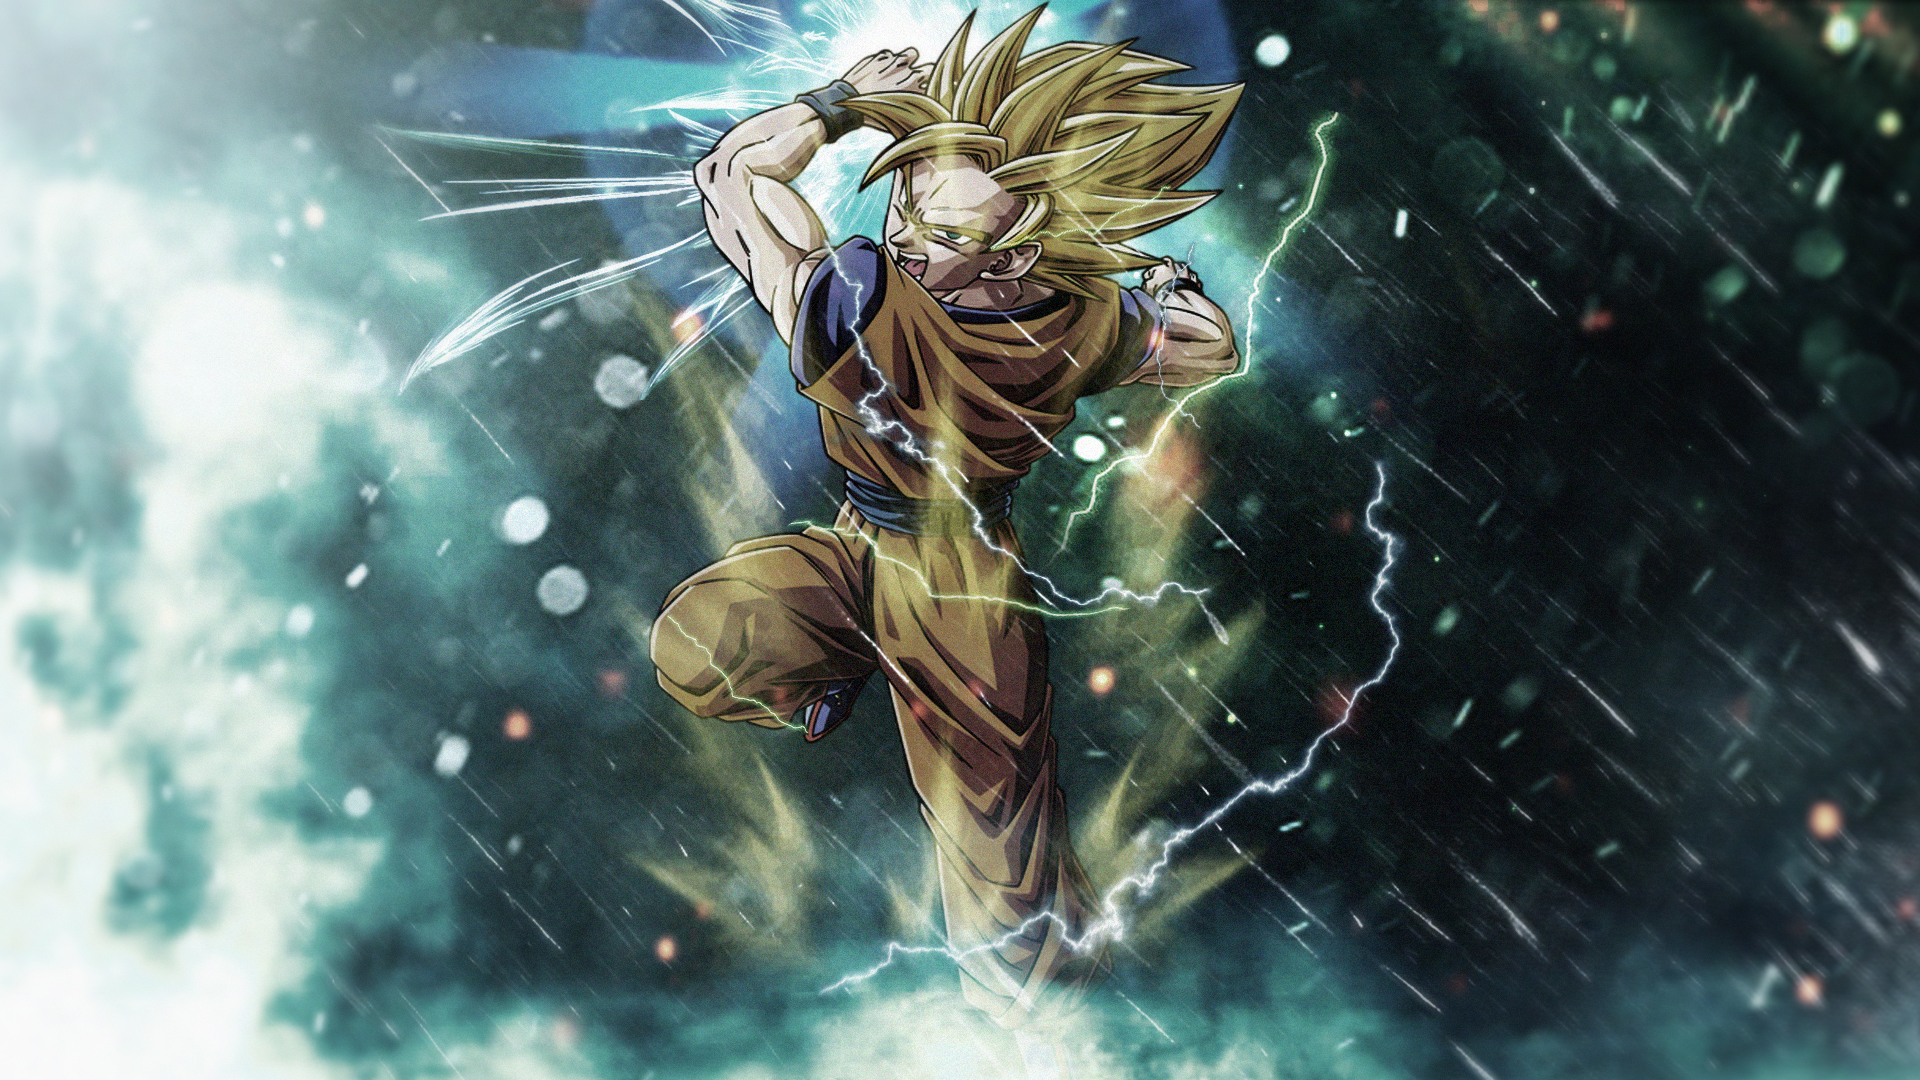 dragon-ball-z-wallpaper-photos-u2ike